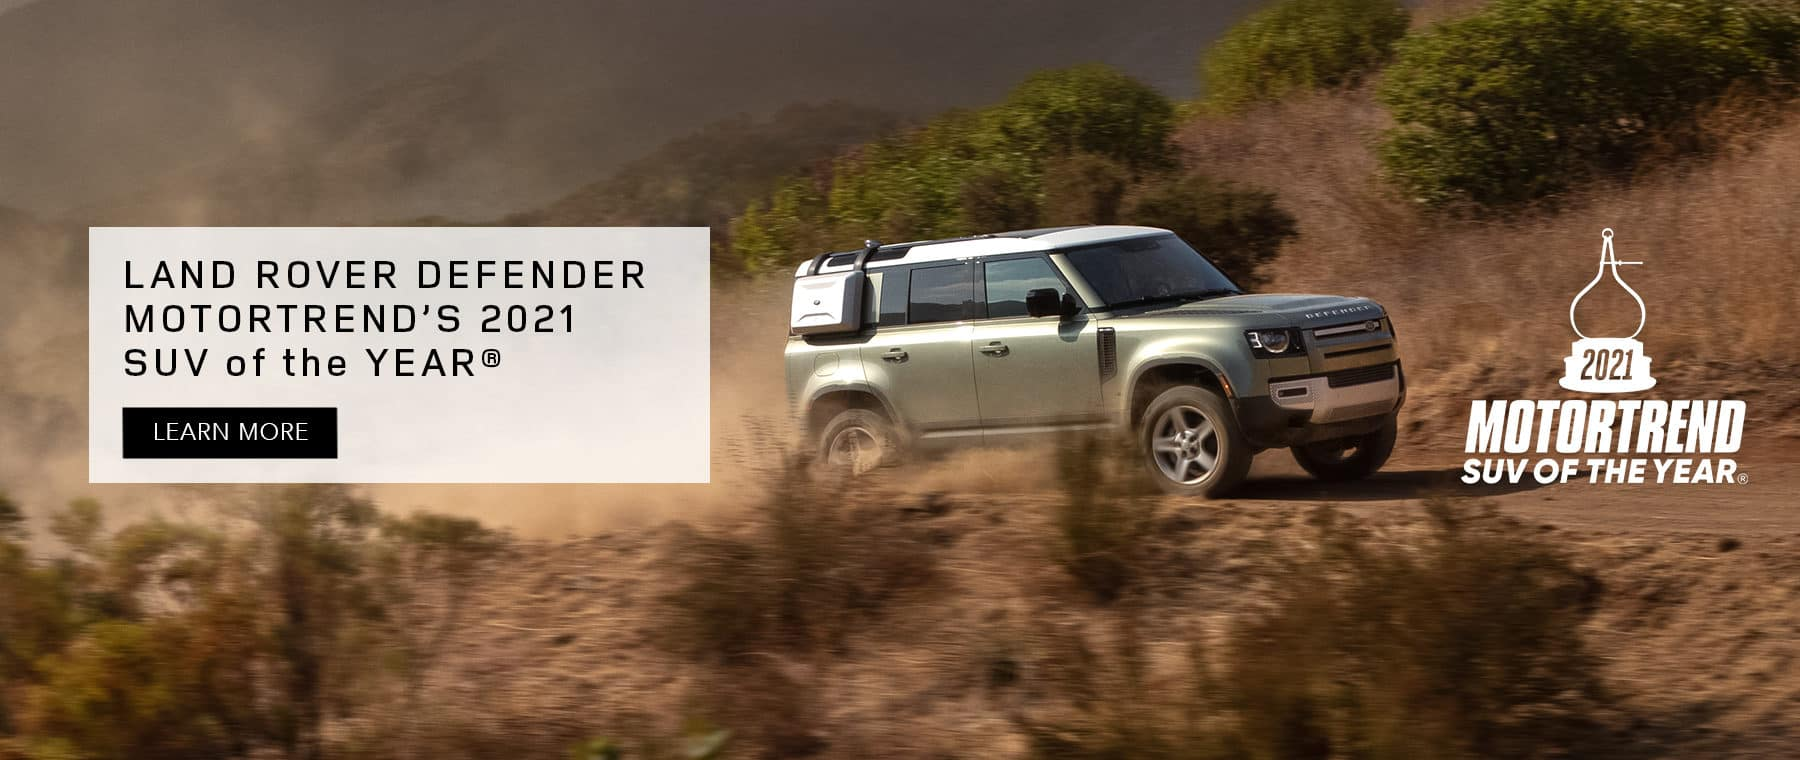 LAND ROVER DEFENDER. MOTORTREND'S 2021 SUV OF THE YEAR. LEANR MORE. SILVER LAND ROVER DEFENDER DRIVING DOWN DIRT ROAD.